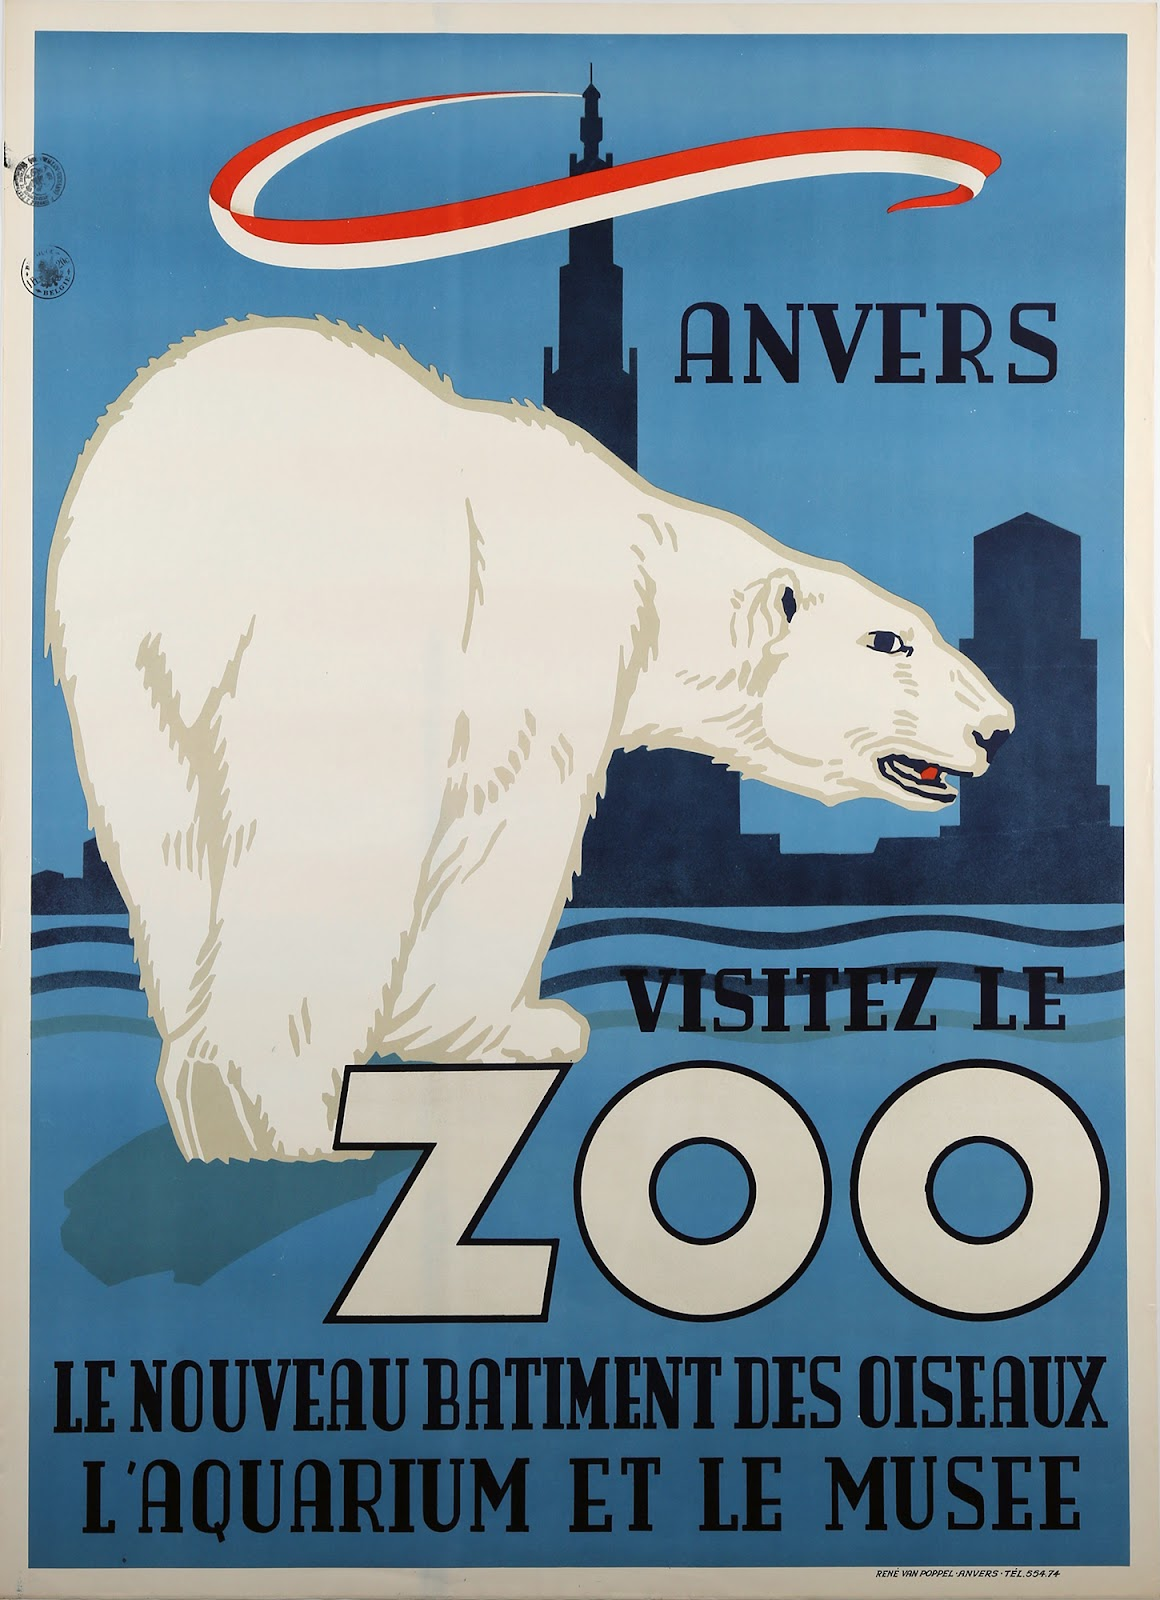 Vintage poster in blue and red